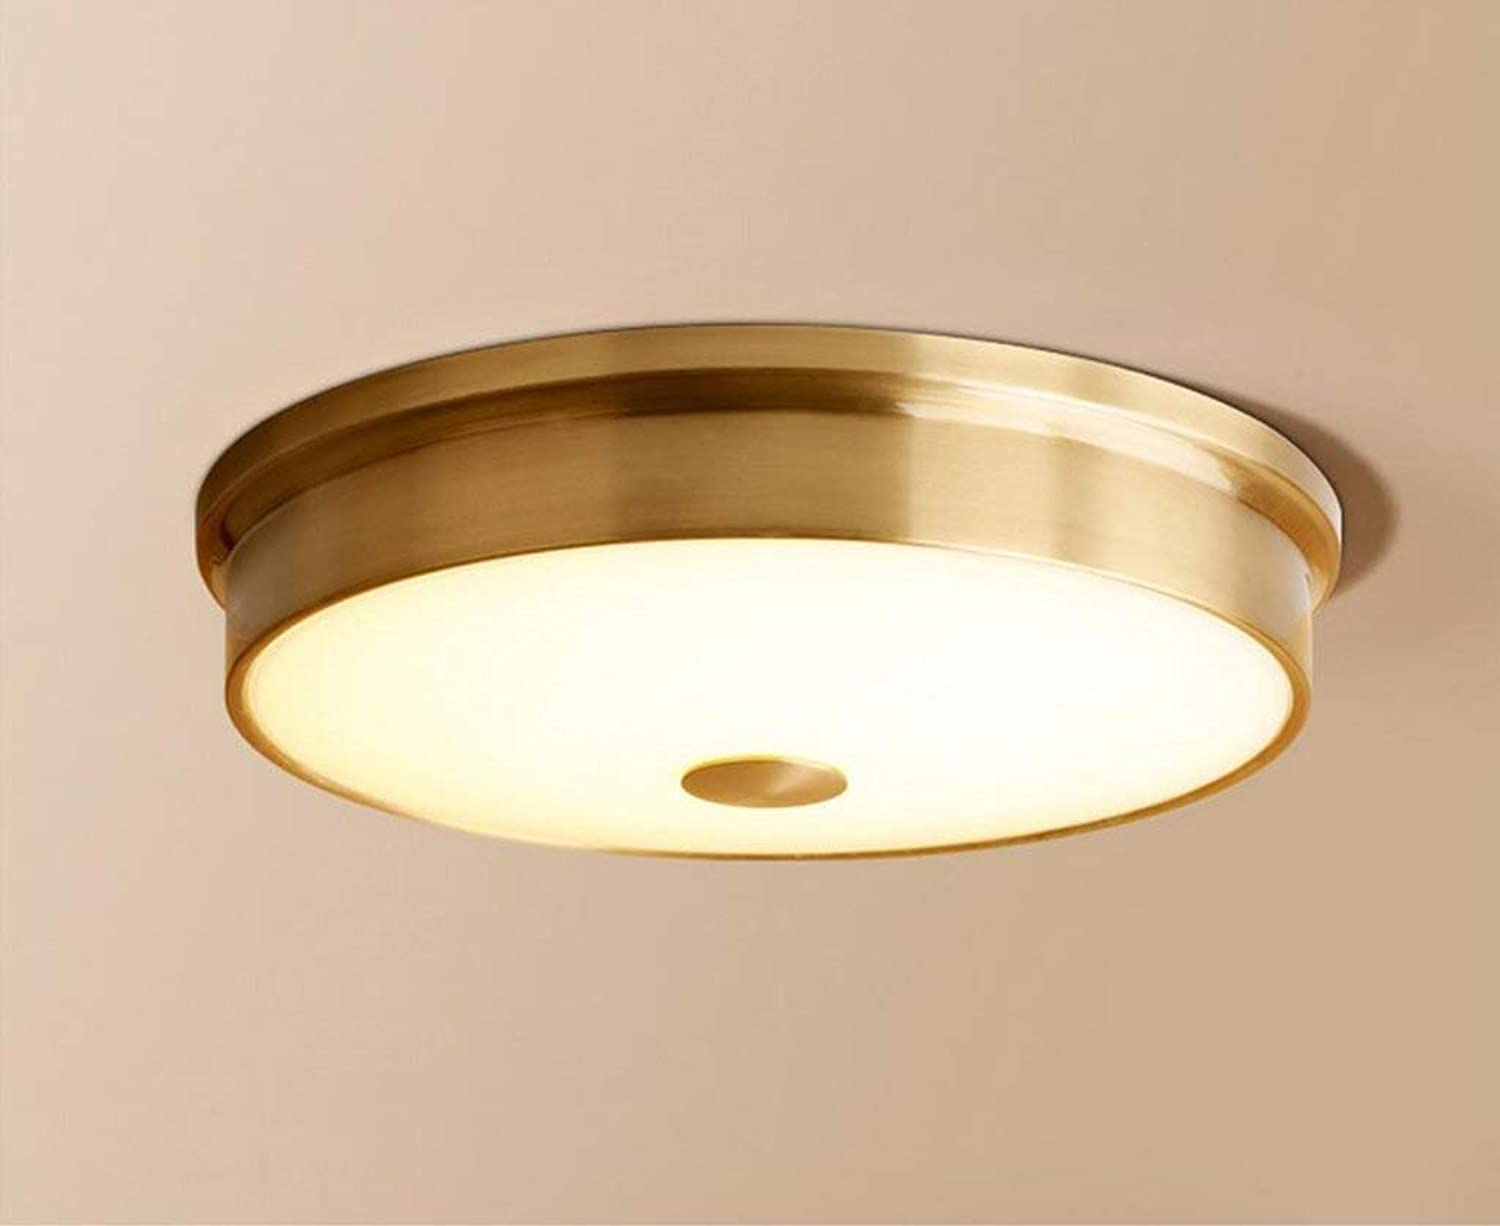 YANG Ceiling Light Copper Lamp Led Ceiling Lamp European Living Room Lights Bedroom Lights Corridor Lights Lamps